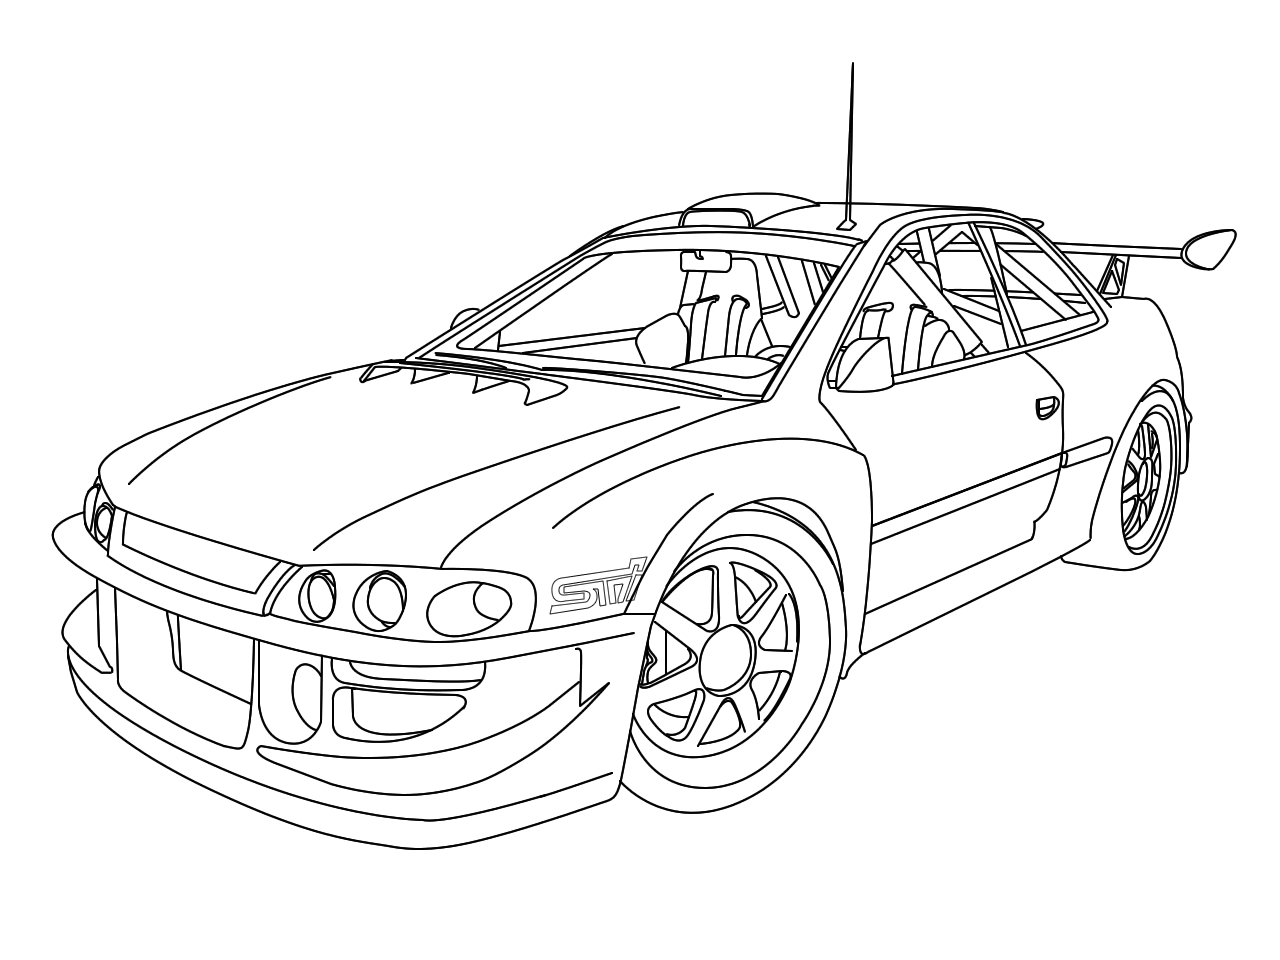 1280x960 Car Drawings Outline